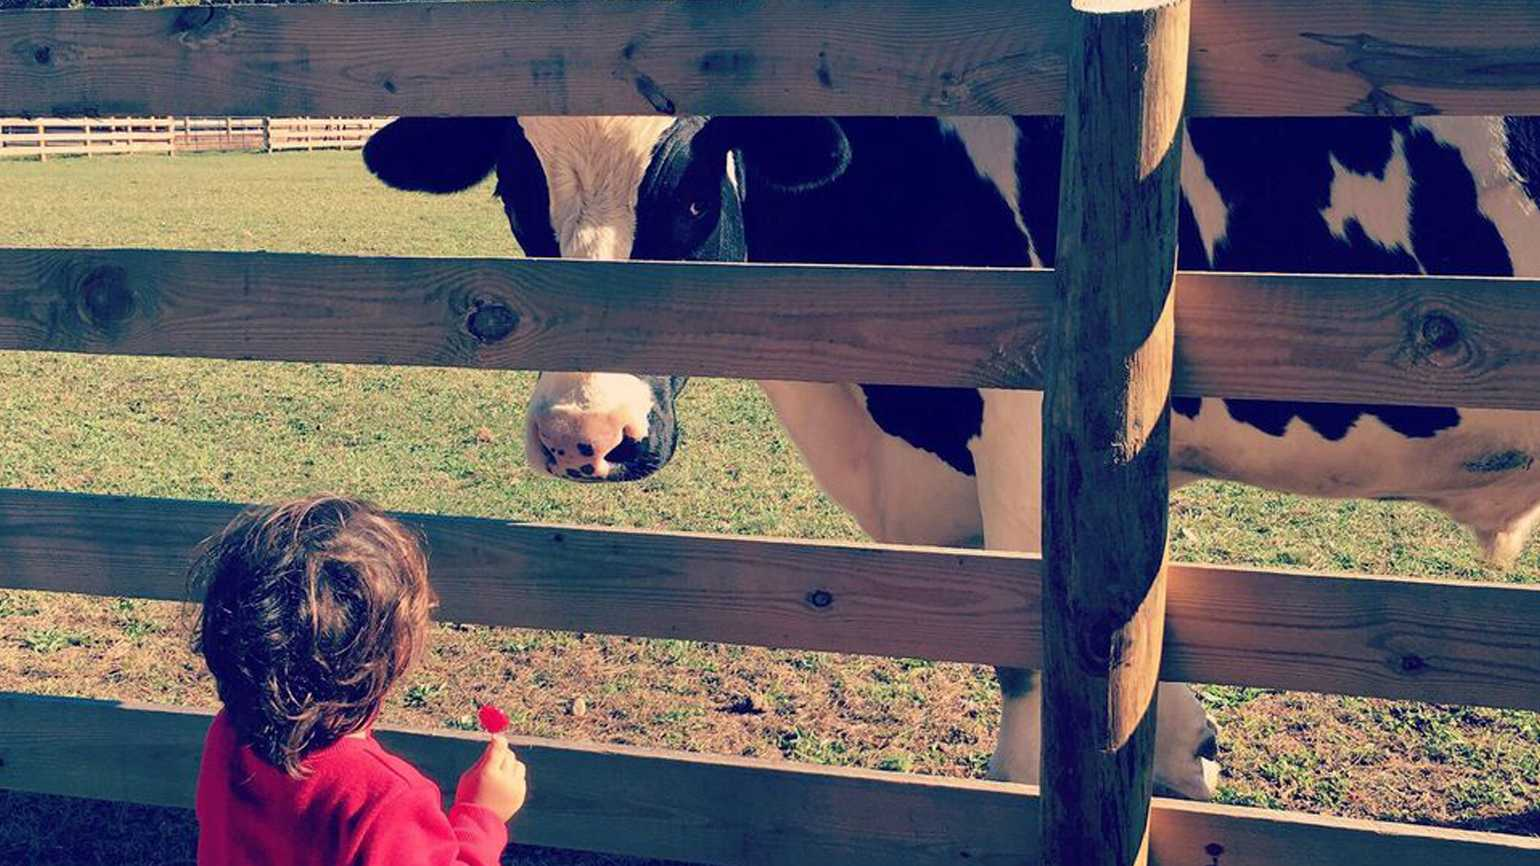 Finding Hope in an Animal Sanctuary